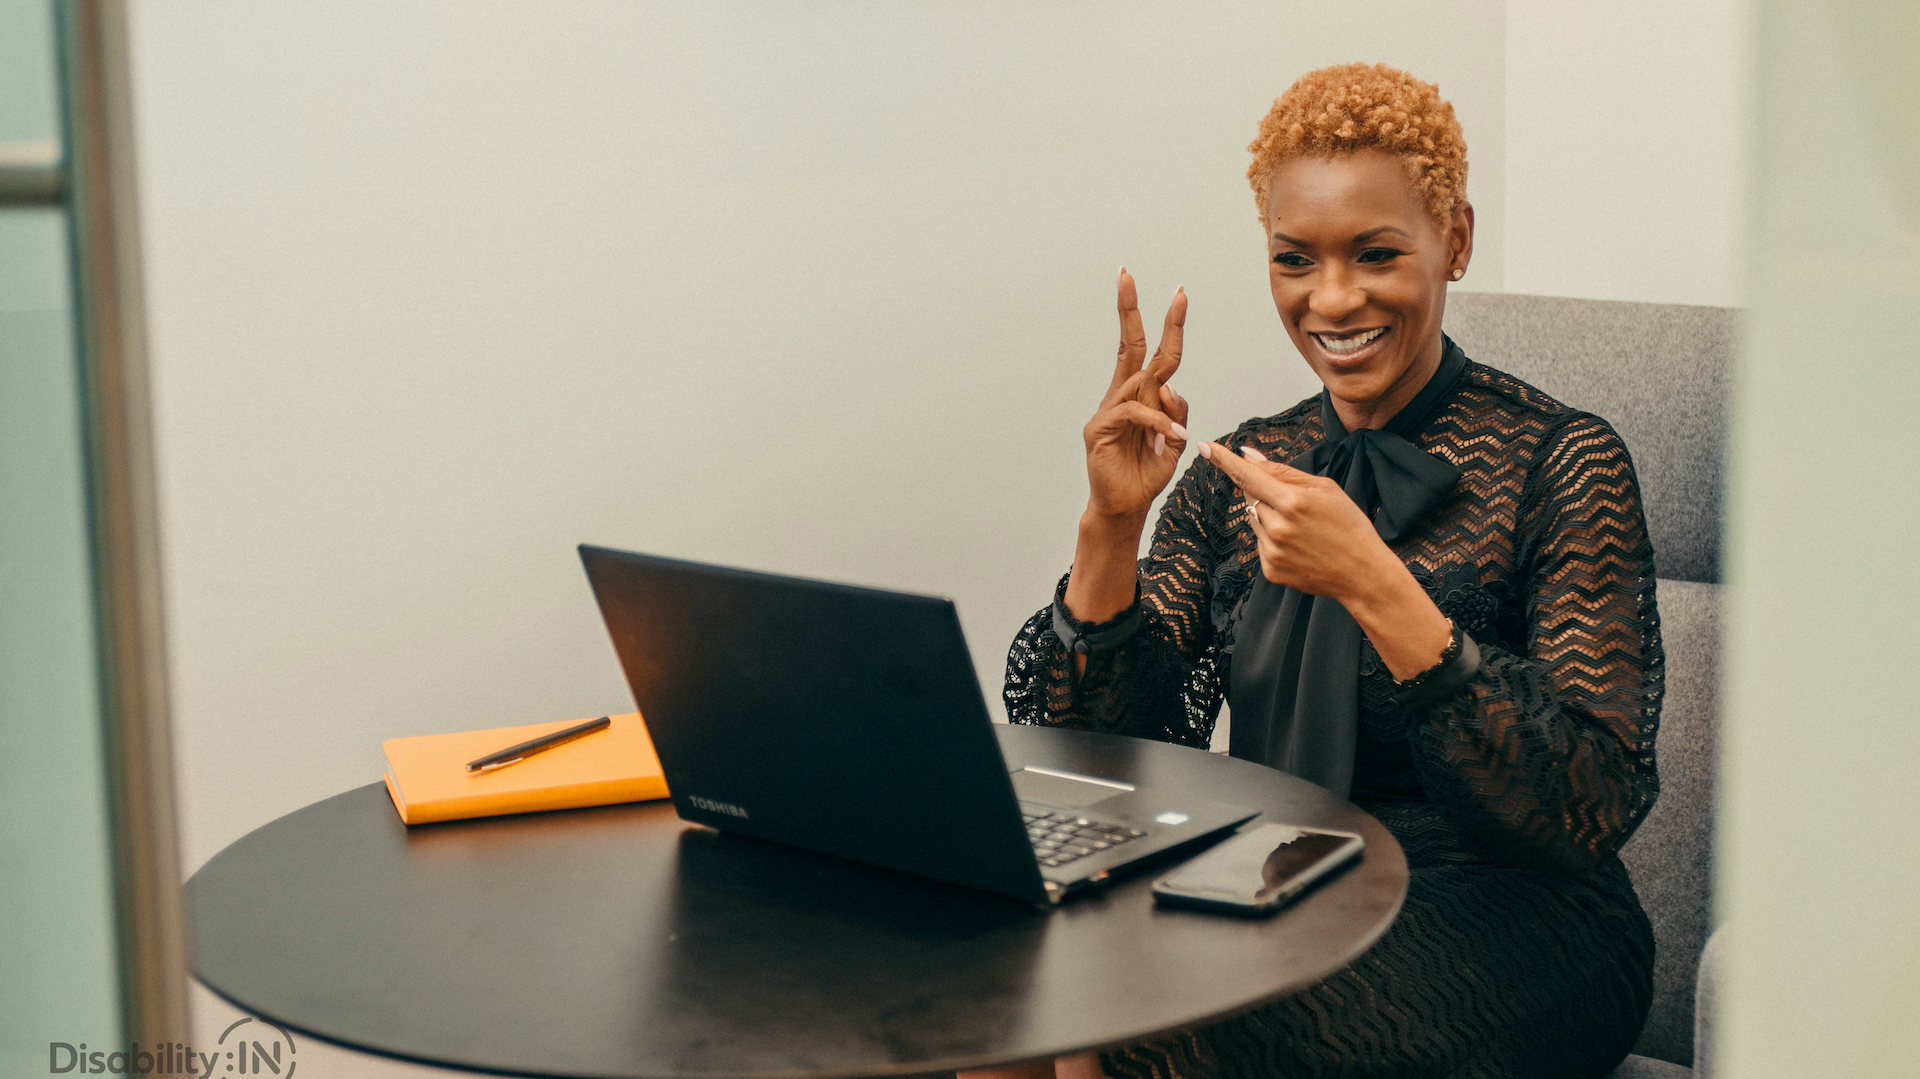 A woman communicates with sign language. She is sitting at a table with a laptop open in front of her.